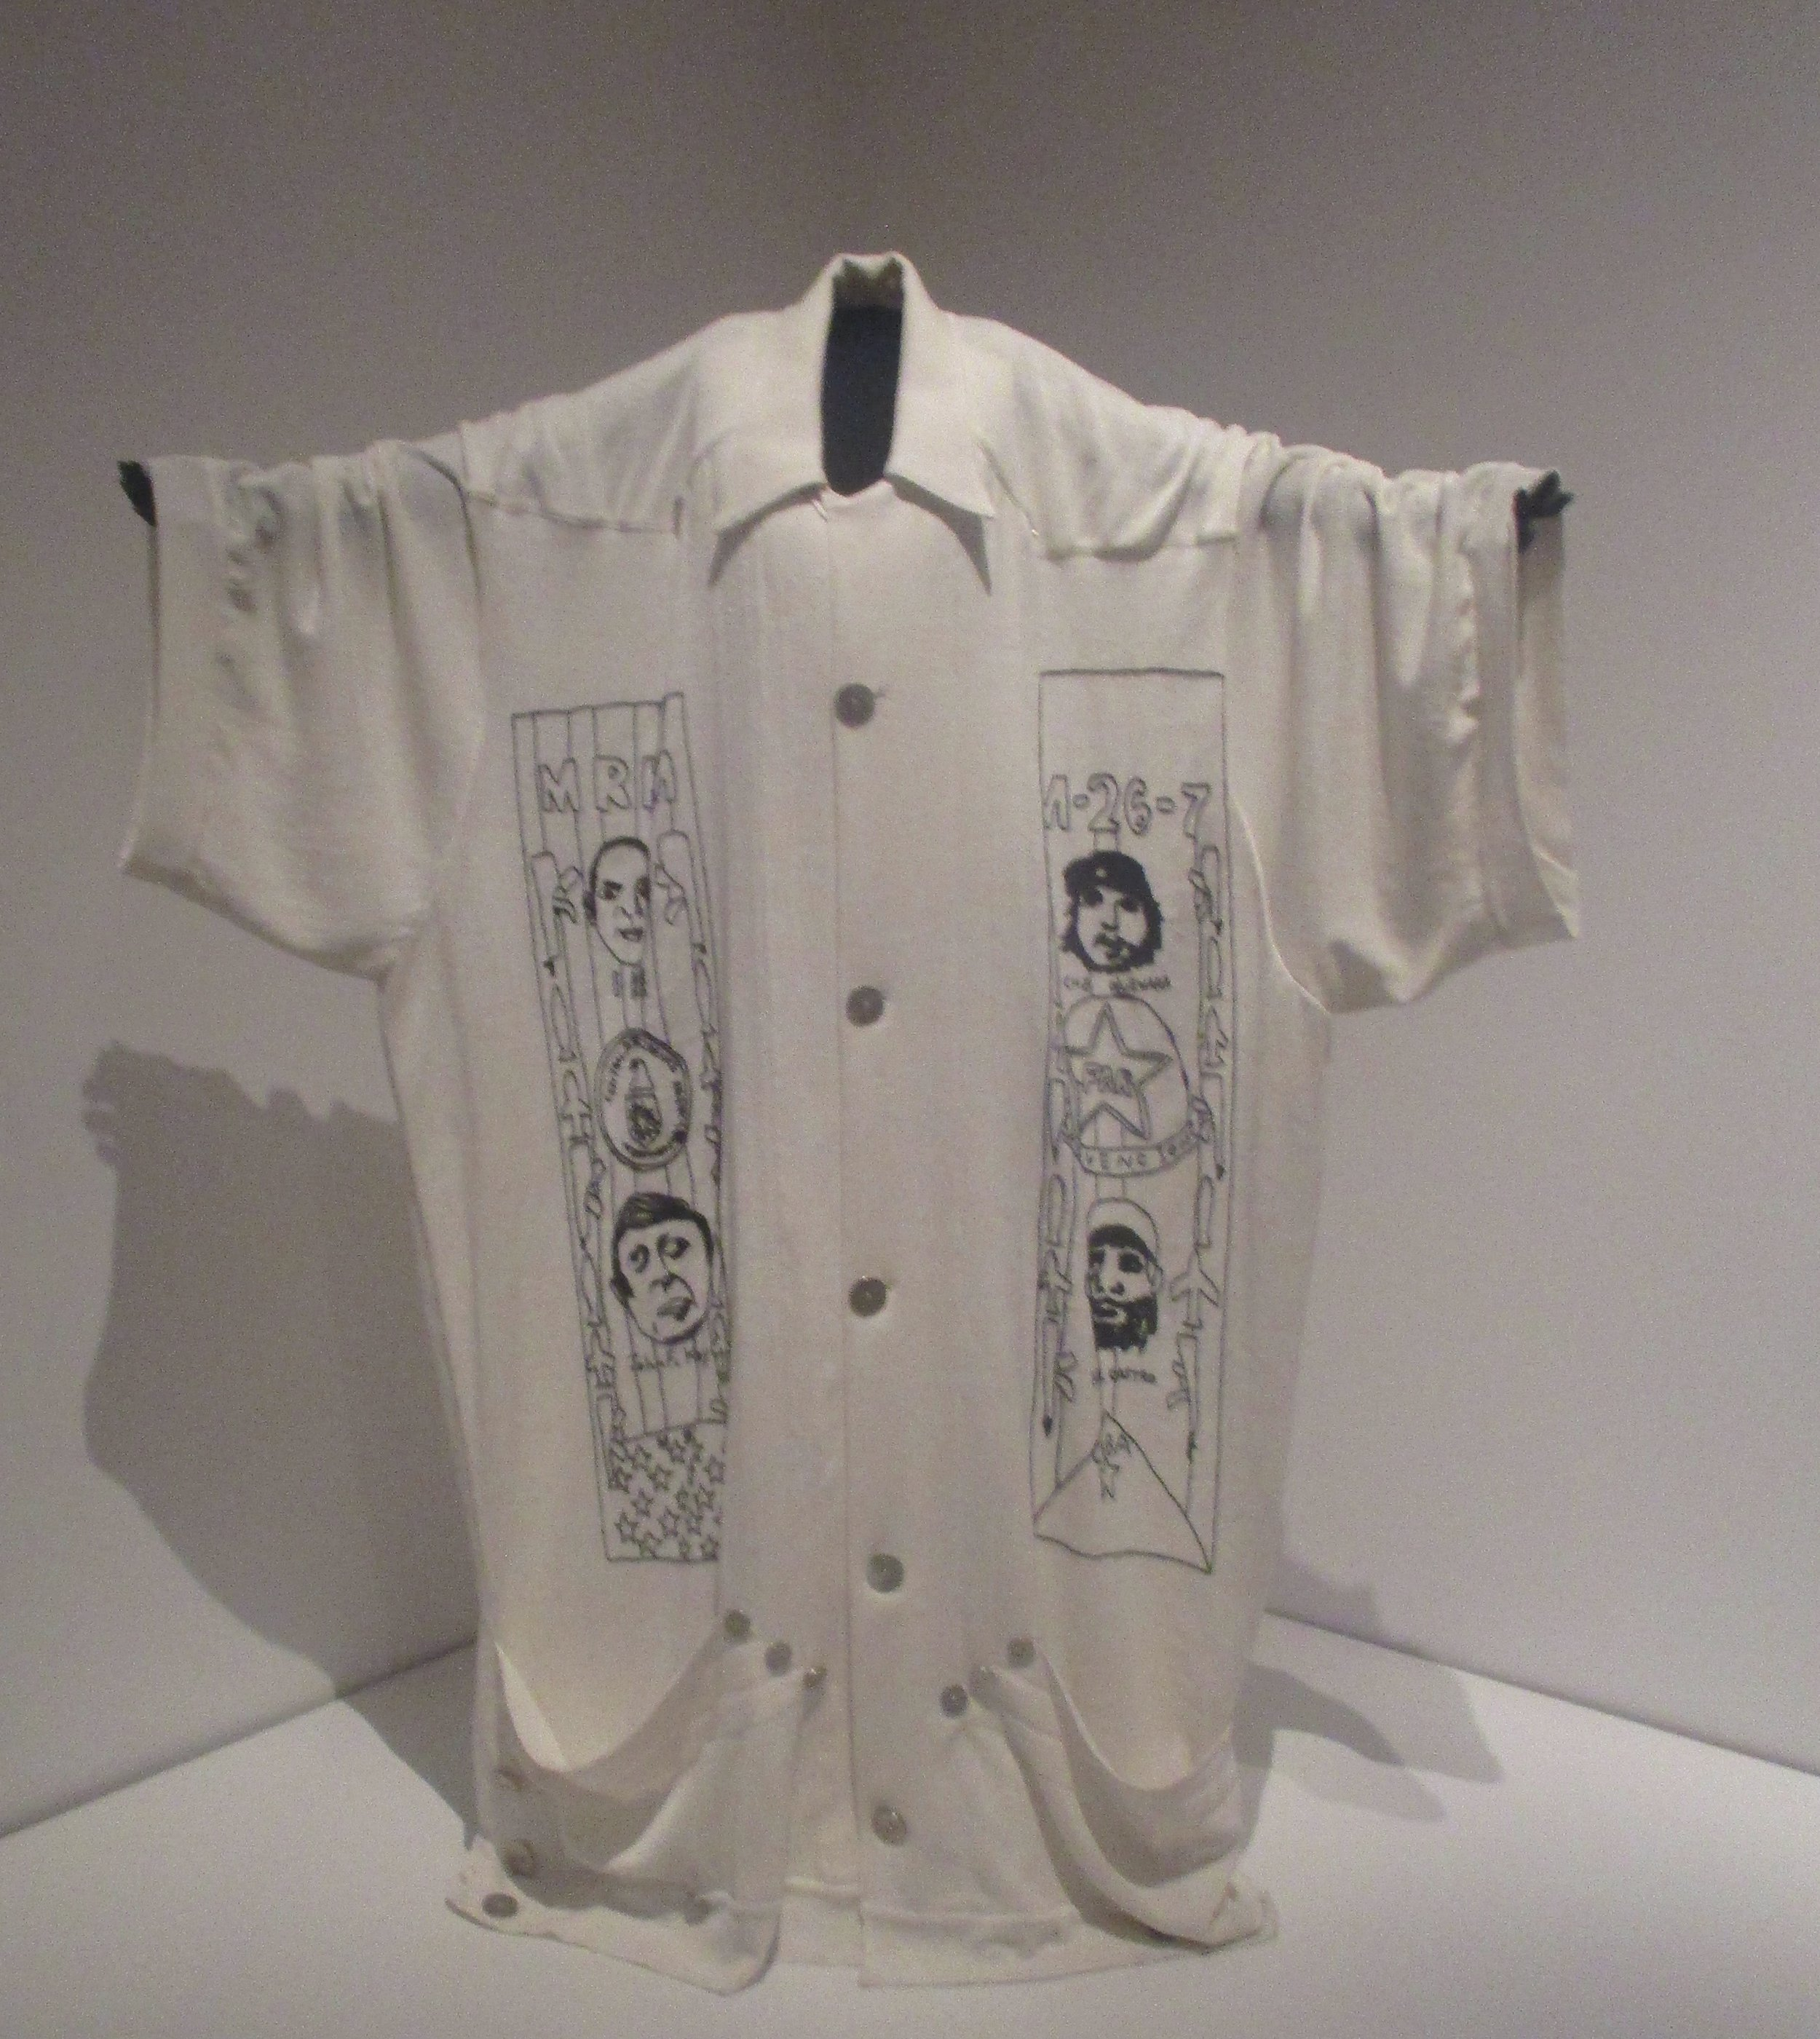 A playful take on the guayabera. I would  totally  wear this to the White Party, but without those gigantic pockets at the hem.